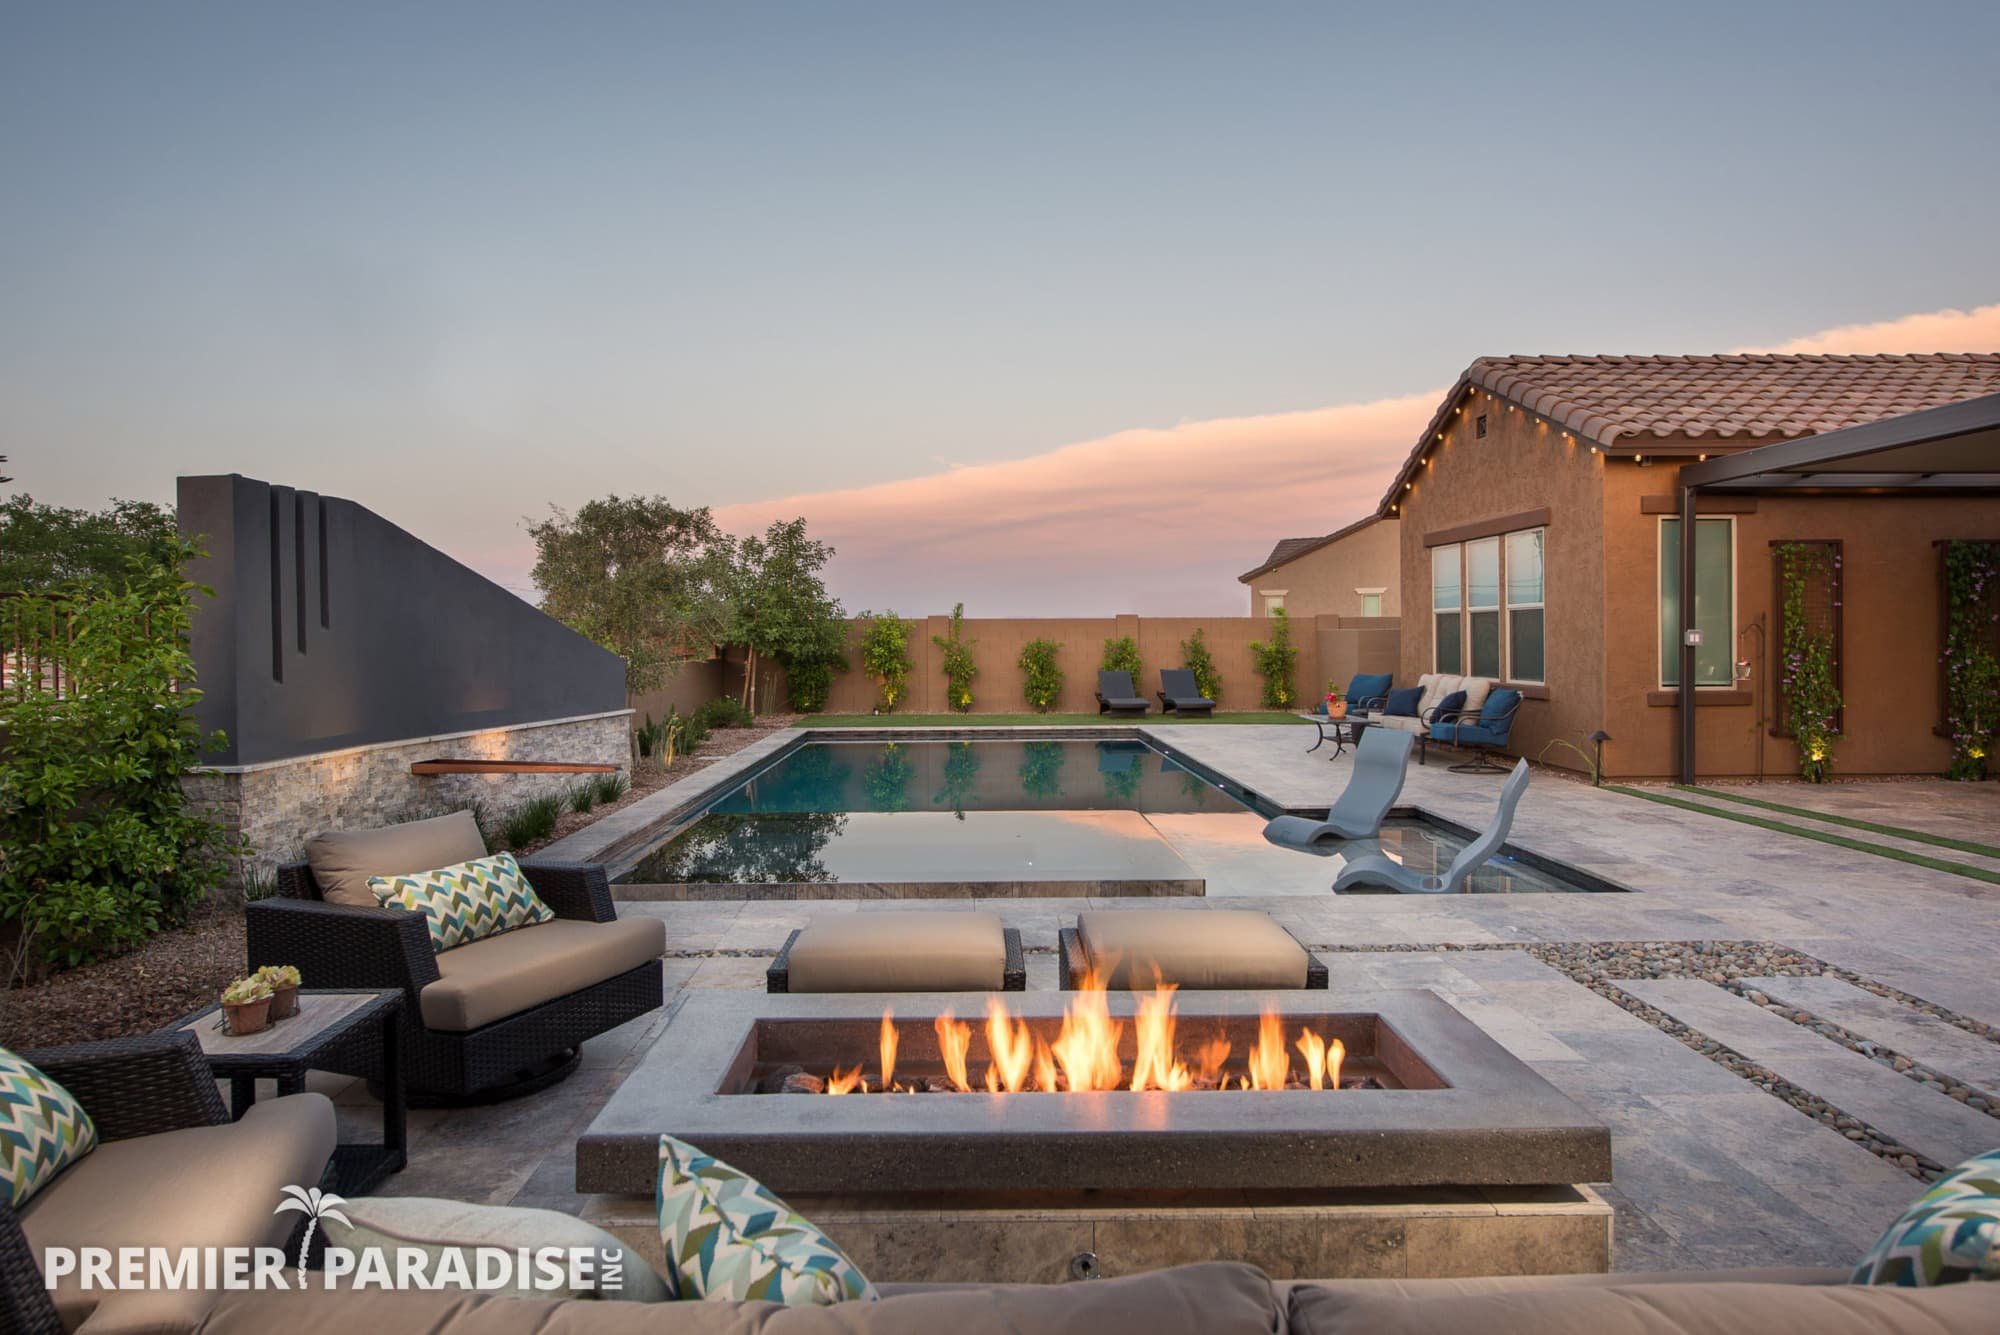 Modern Perimeter Overflow Spa & Luxury Outdoor Living ... on Outdoor Living Spa id=65819